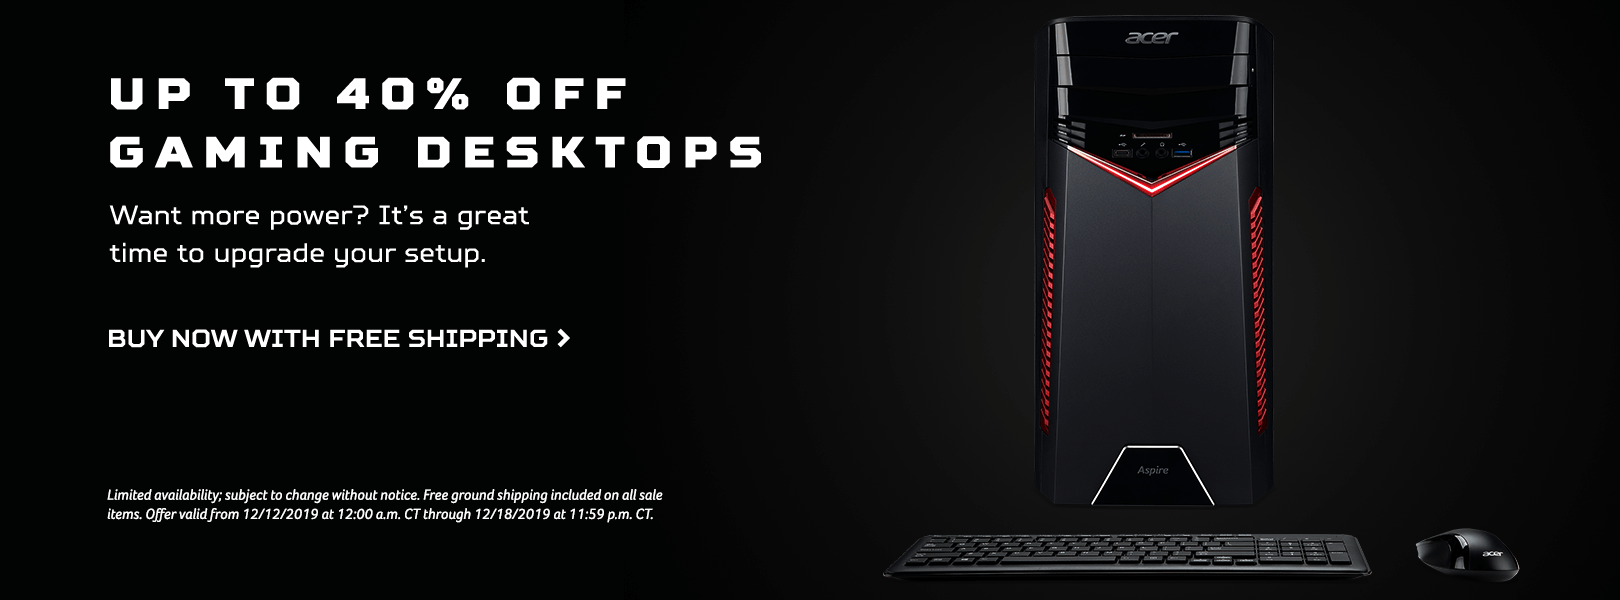 Save up to 40% on Gaming Desktops